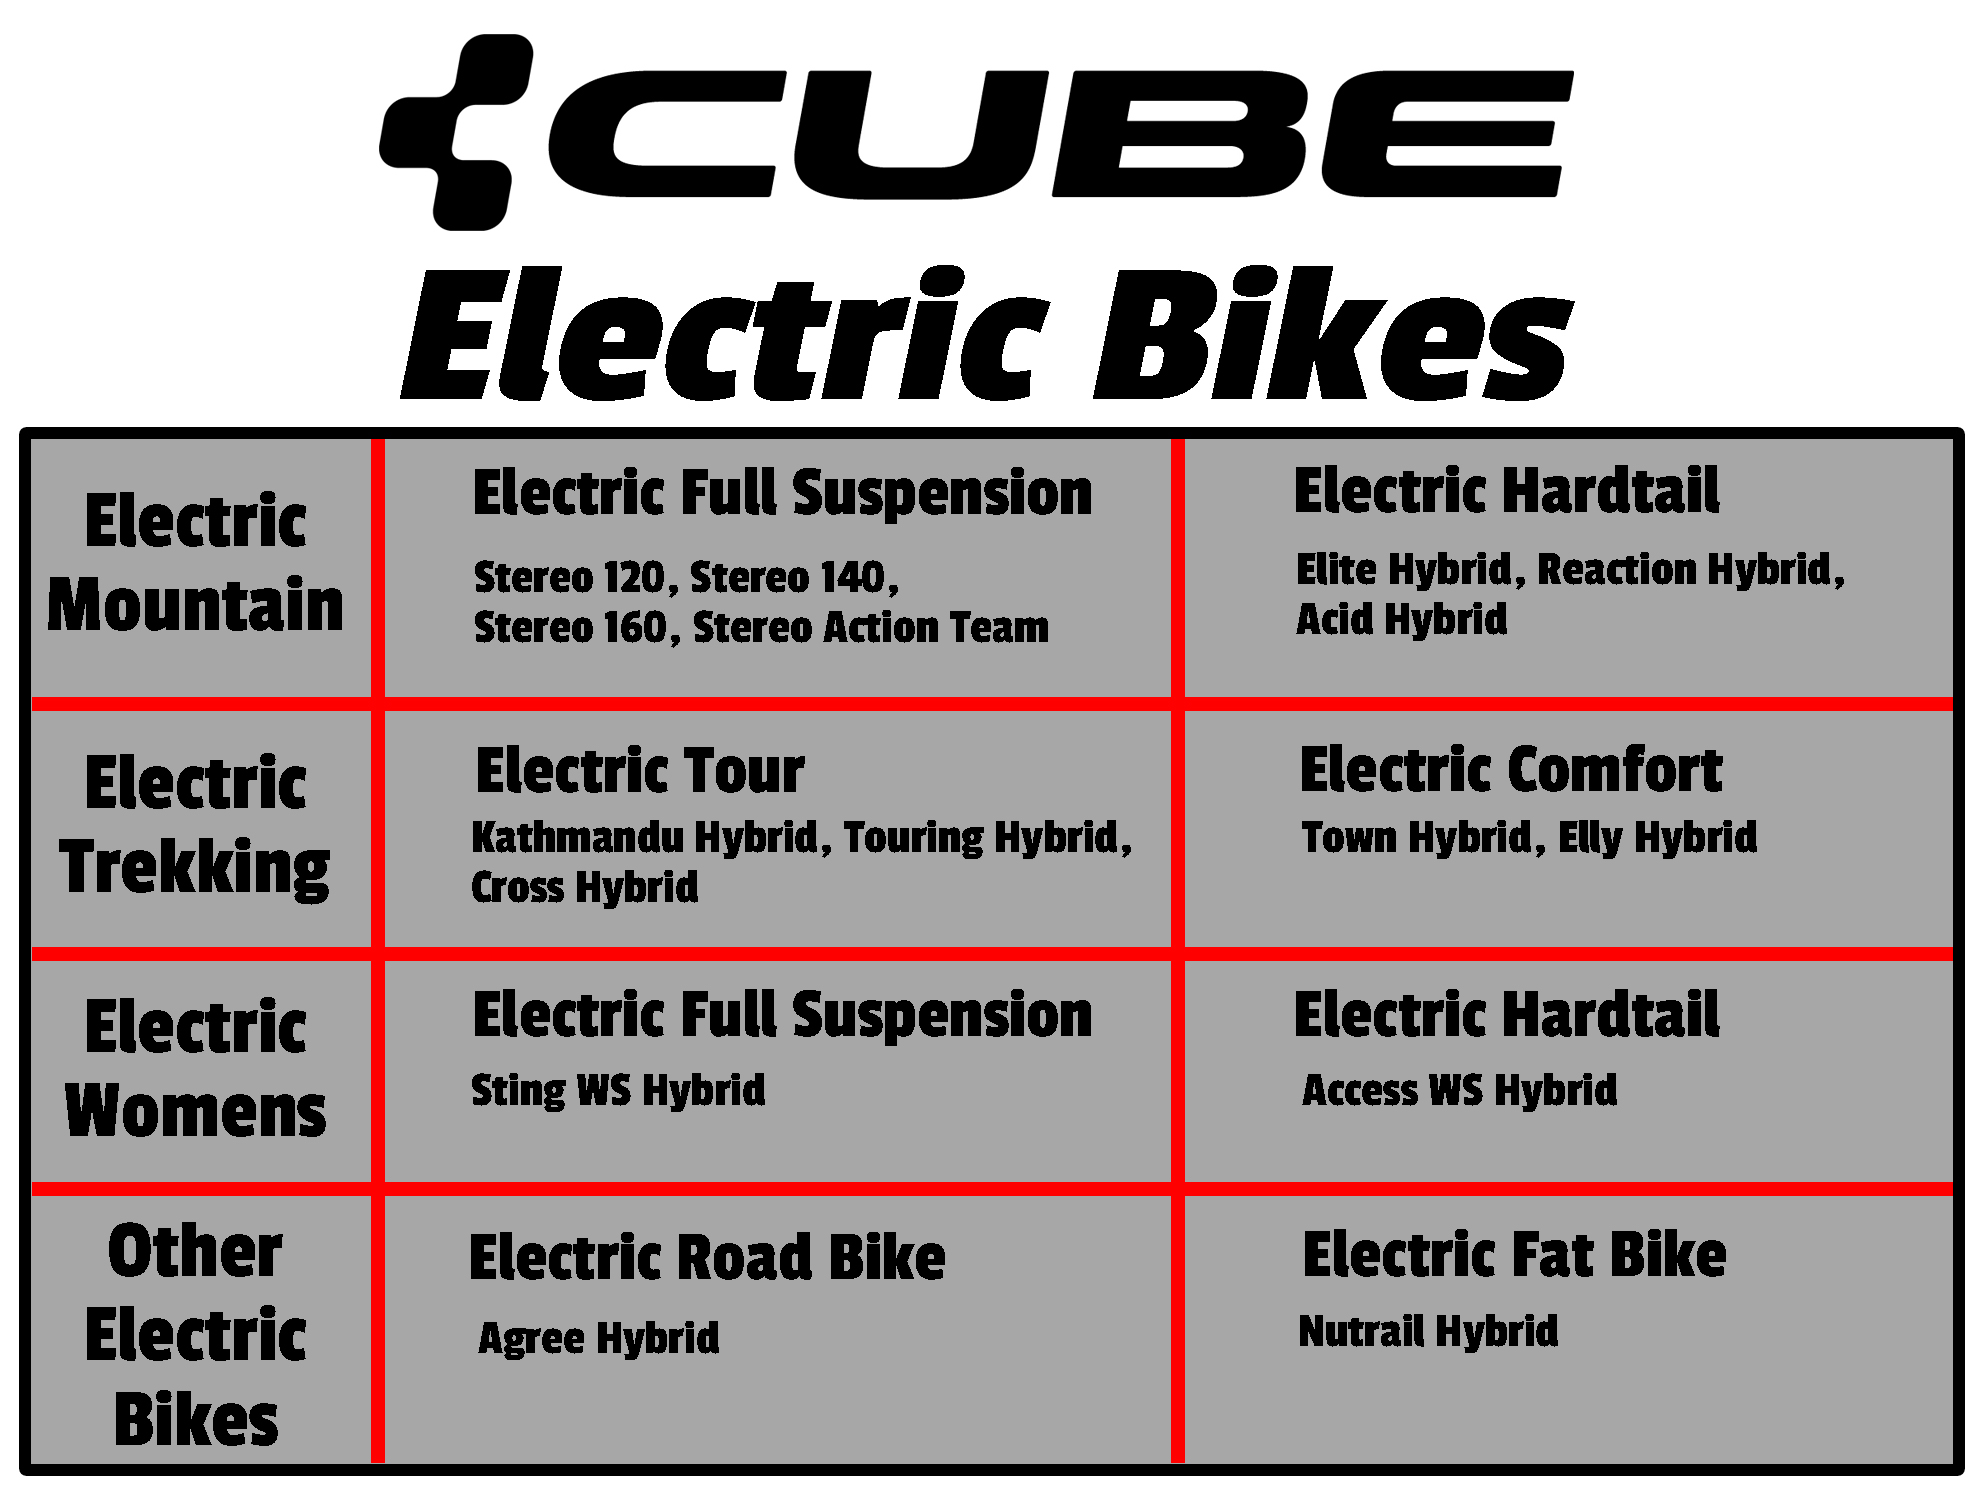 cube-electric-bikes-range-guide-and-information-chart-mtb-monster.jpg